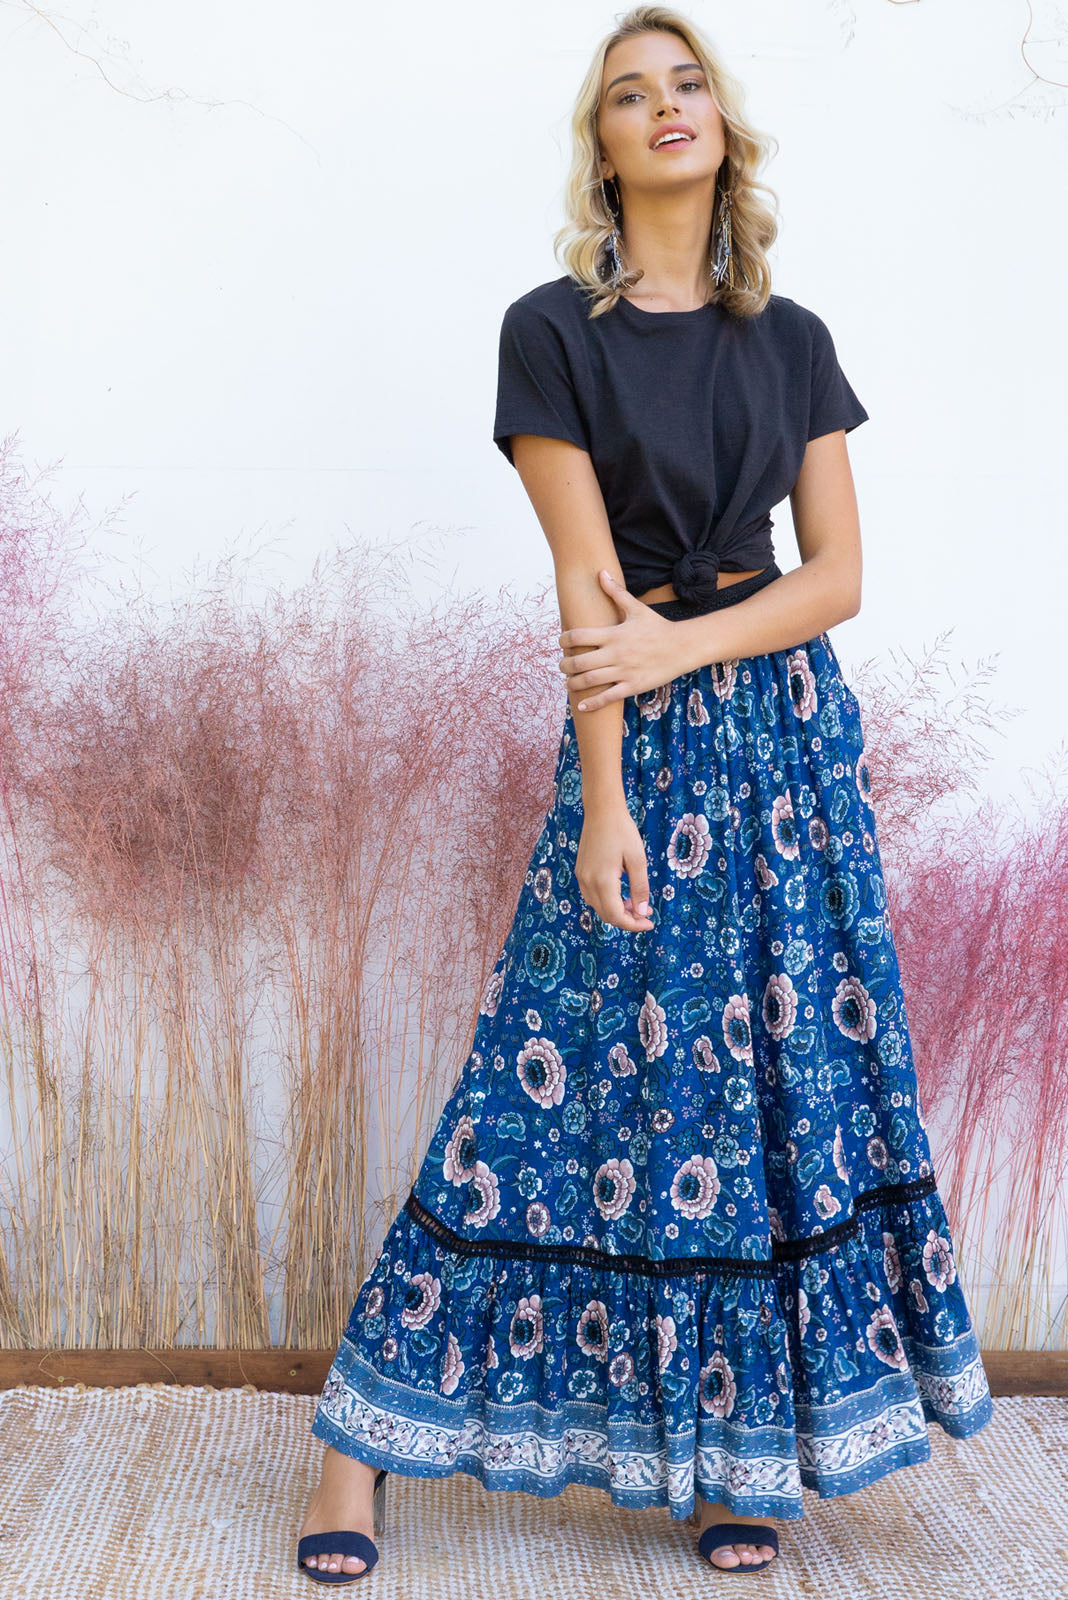 Joni Canyon Navy Maxi Skirt with a soft elastic waist band, side pockets, insertion lace and a deep frill on the hem it comes in a gorgeous vibrant bright navy, dusty pink and and soft cream intricate floral border print on rayon fabric